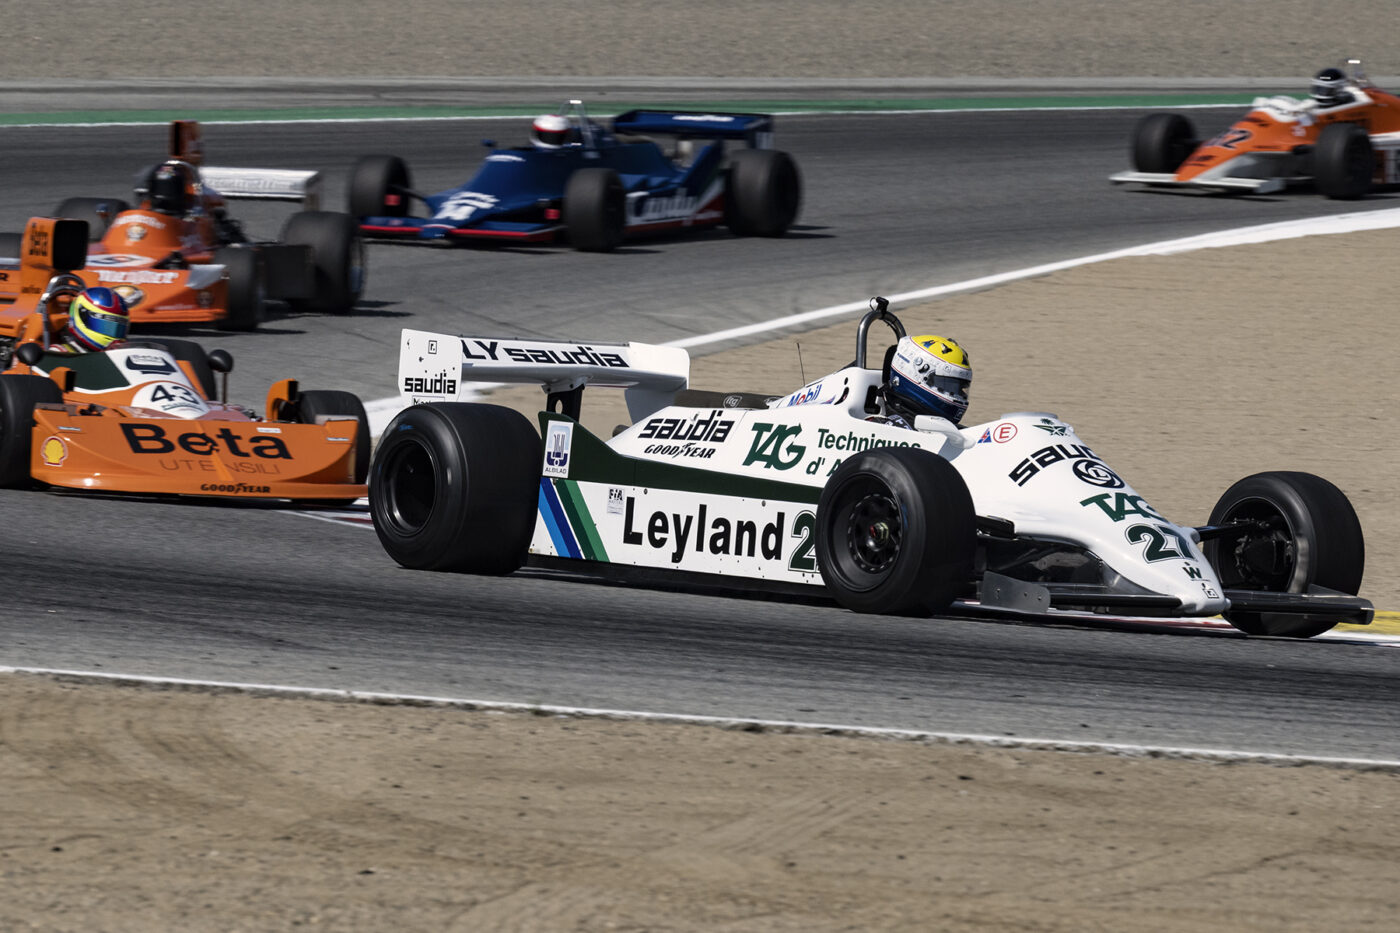 Charles Nearburg's 1981 Williams FW07C 2992 leads a tight group of Masters F1 cars through turn two Sunday morning. These guys put on a show. ©2021 Dennis Gray